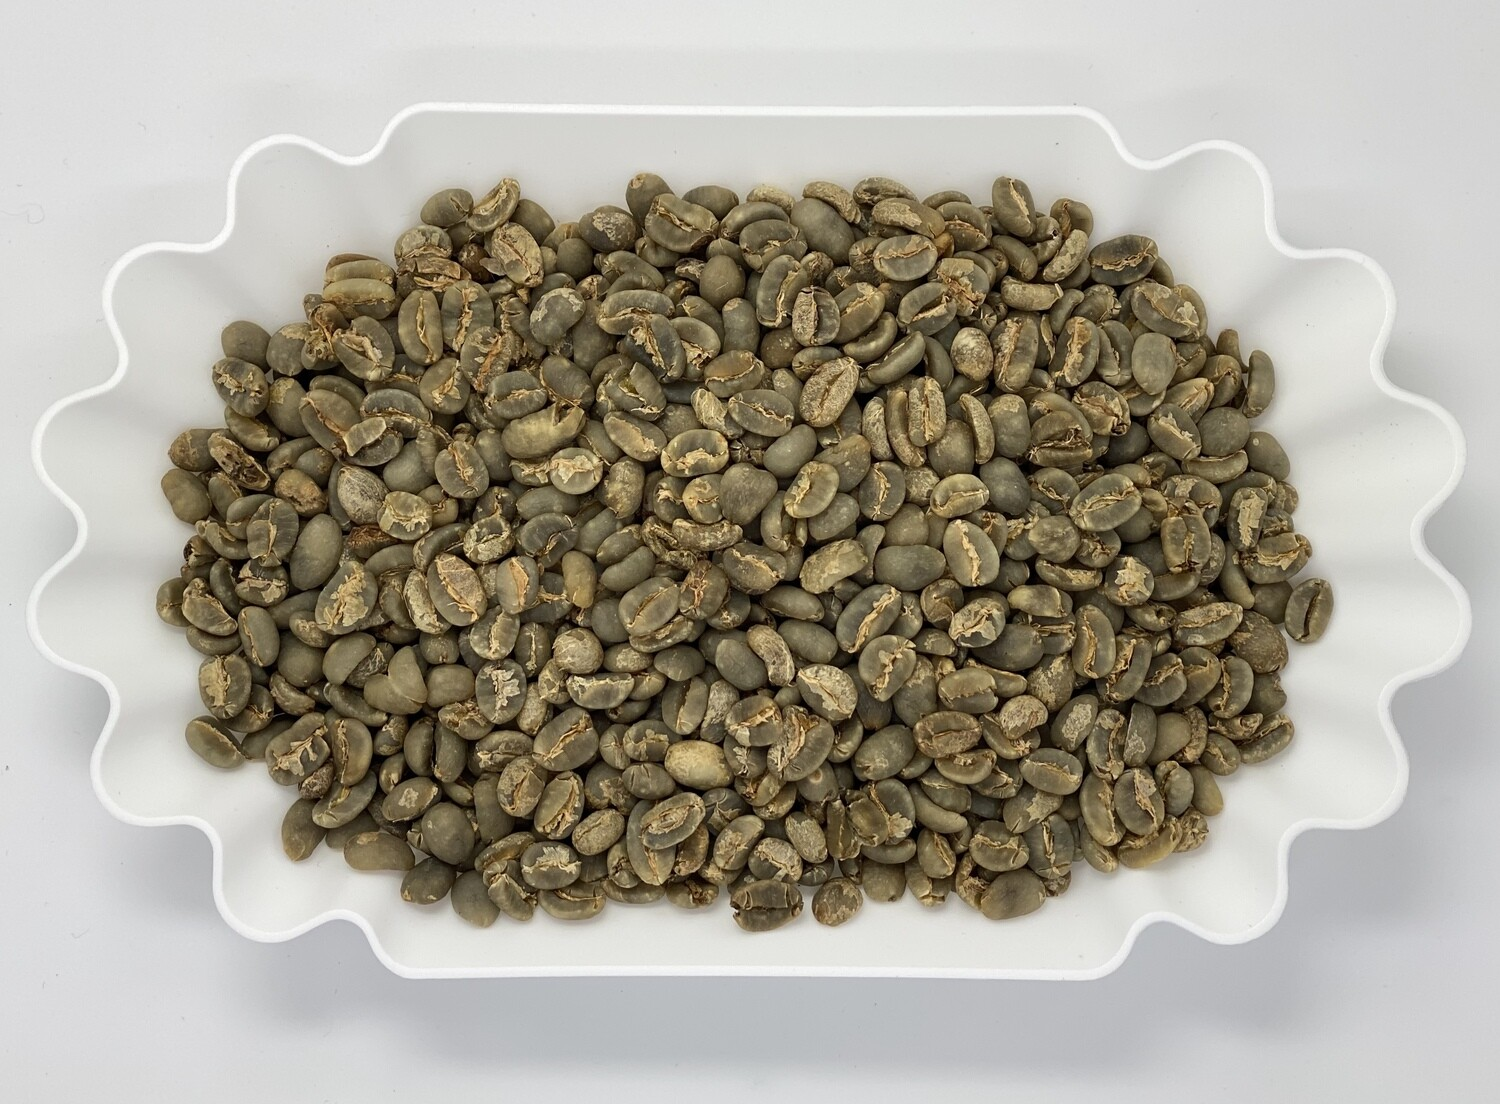 Gayodi Sumatra Takengon, Semi - Washed, Scr. 17/19, Arabica